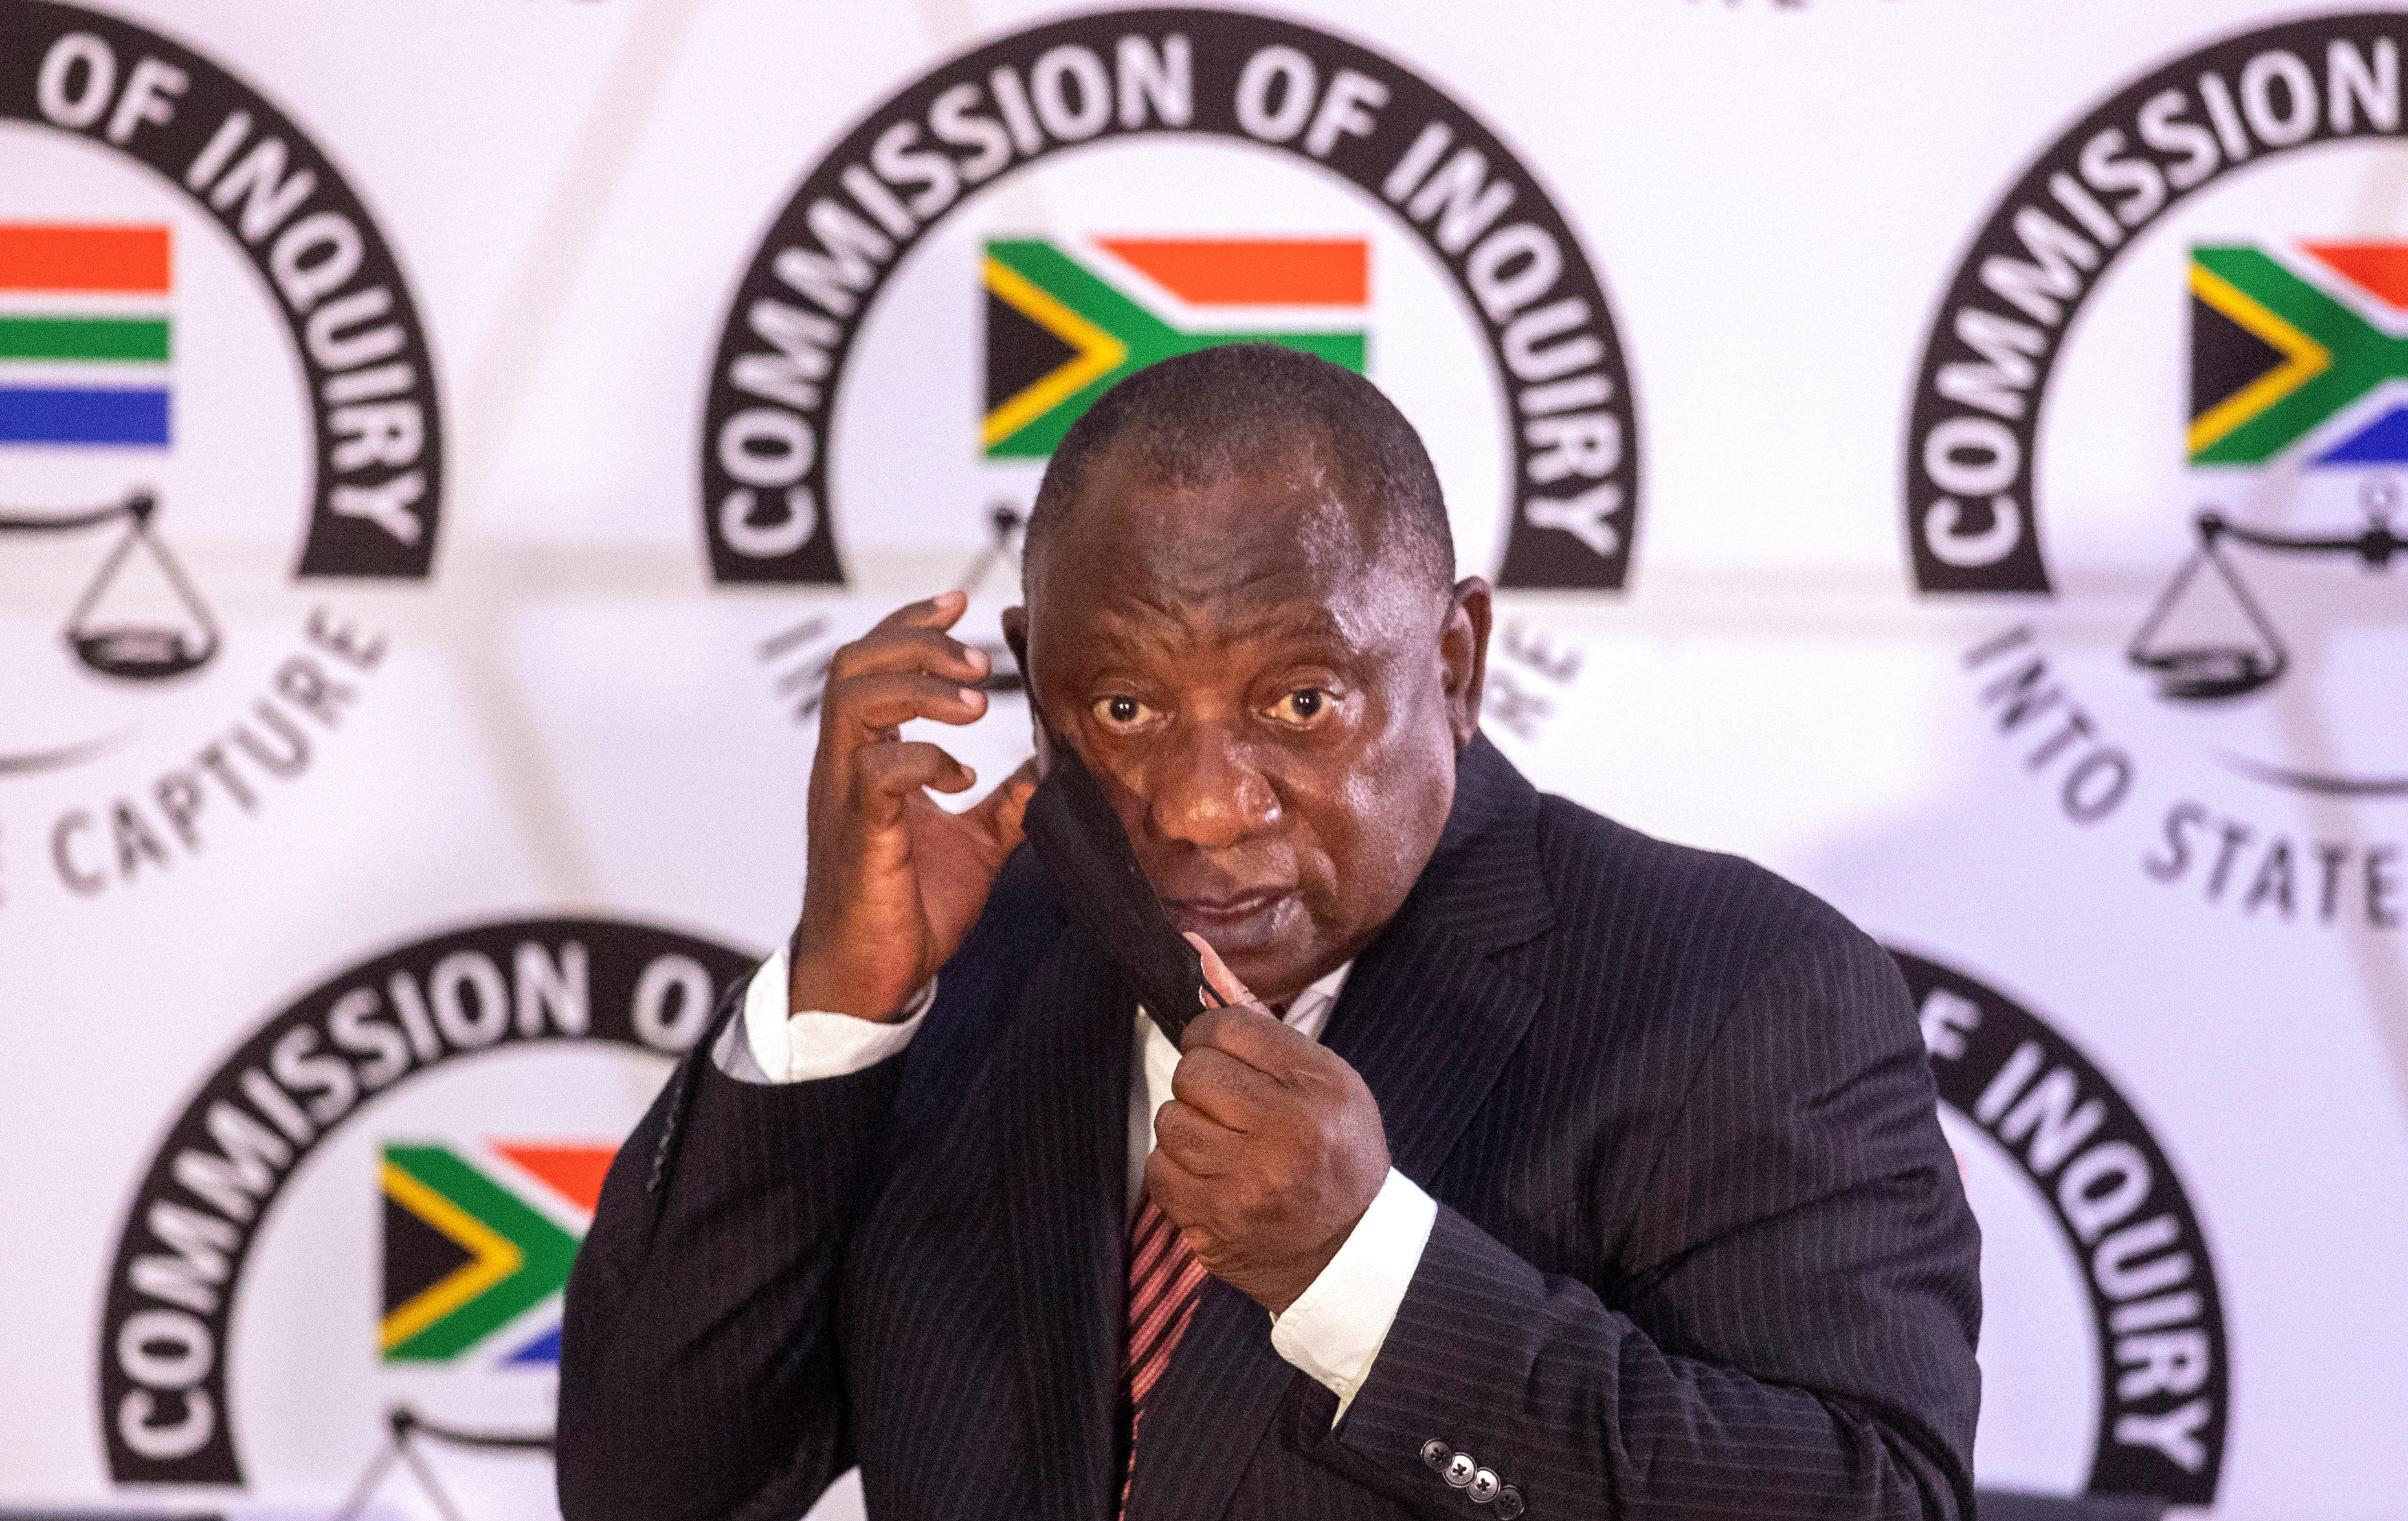 South Africa S Ramaphosa Says Anc Should Have Done More To Prevent Zuma Era Corruption Reuters